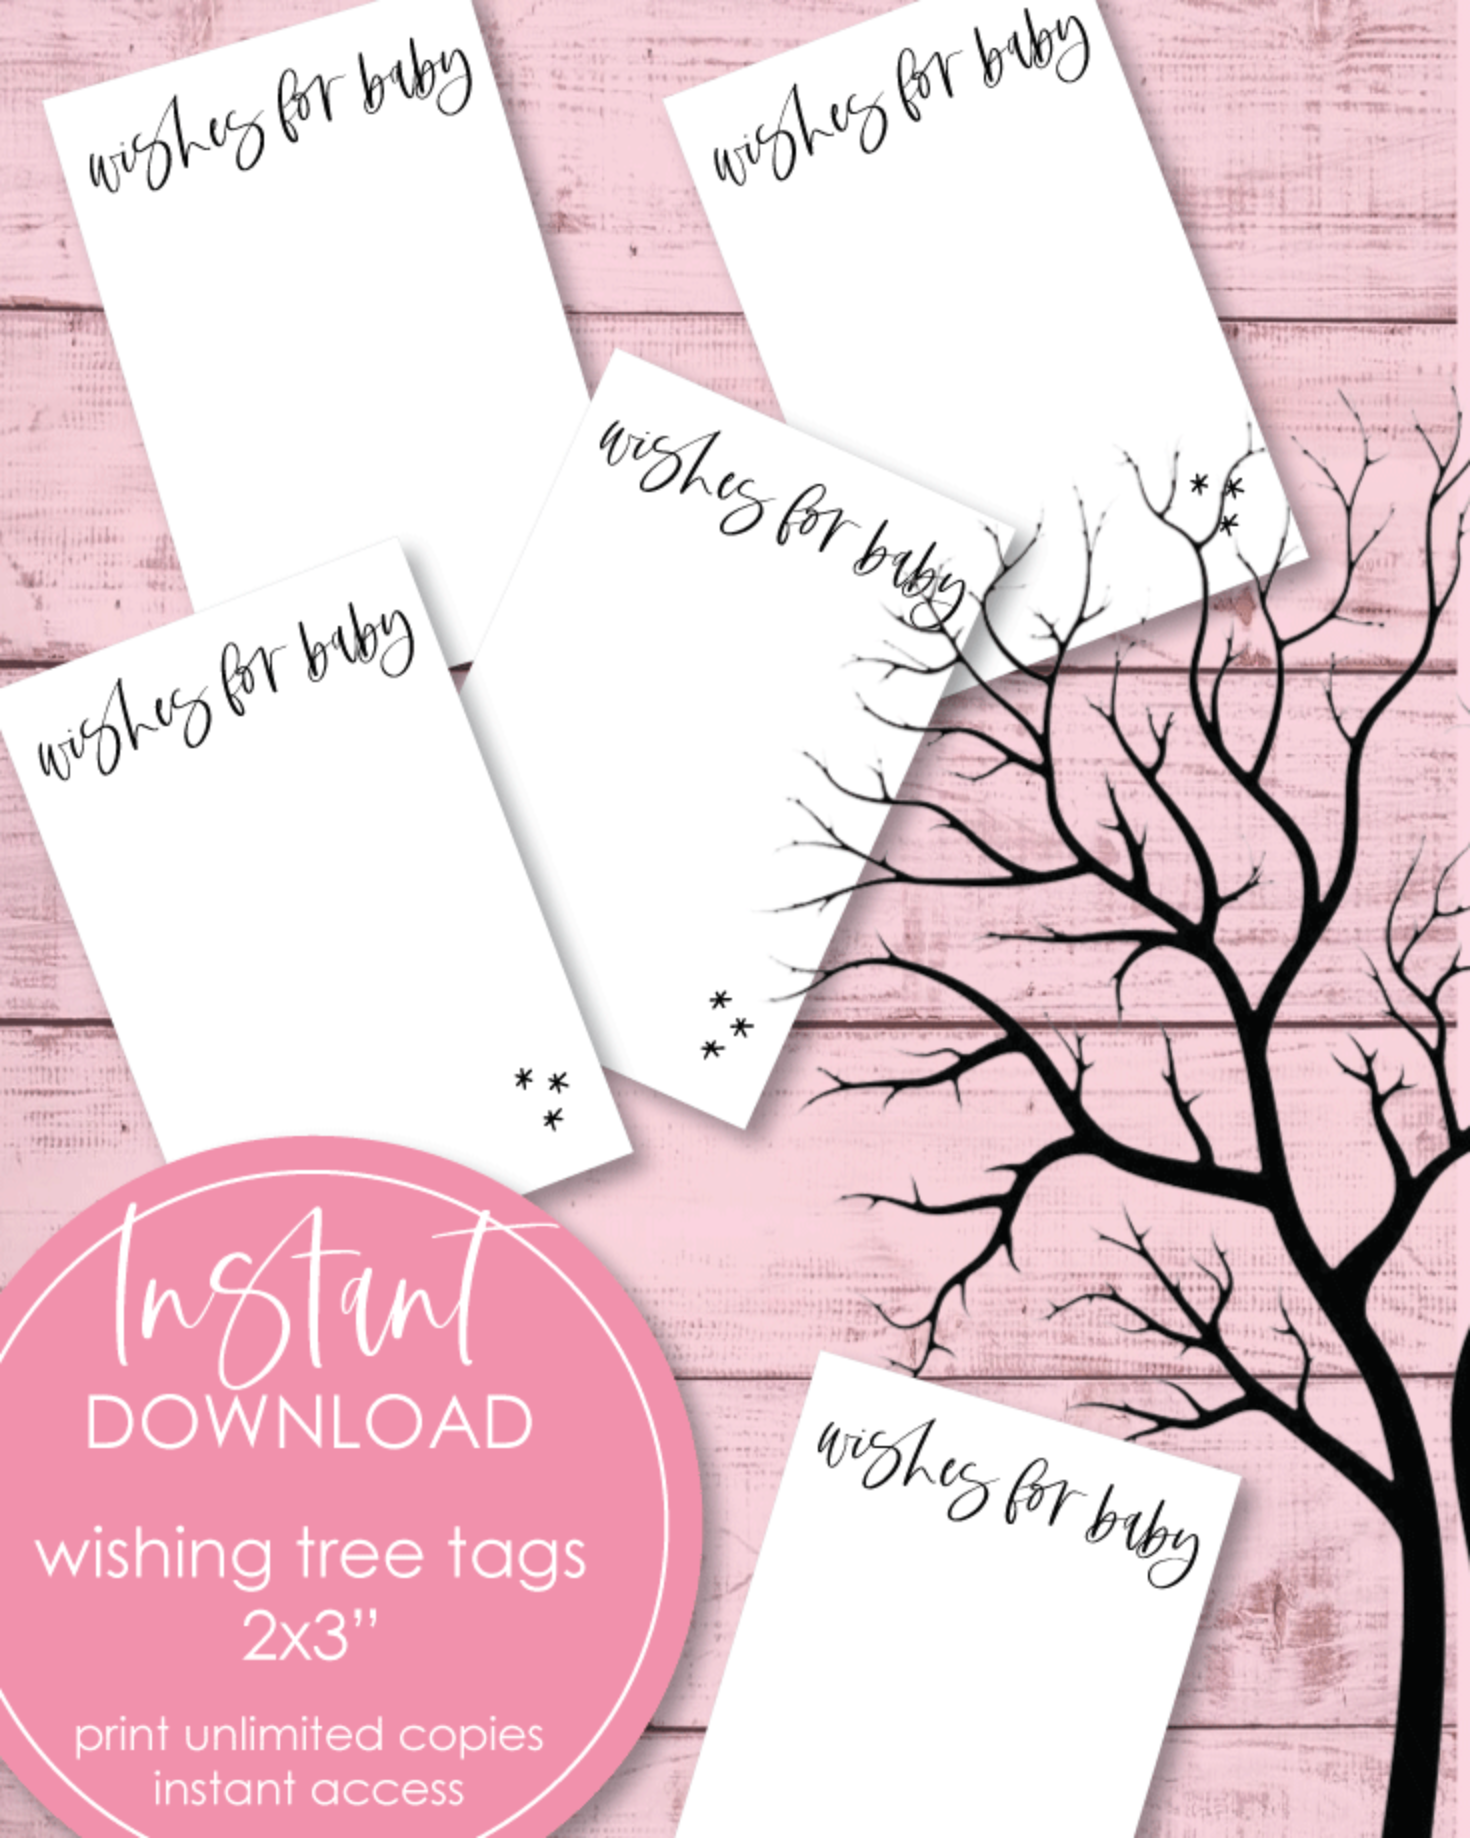 Wishing Tree Tags For A Baby Shower 2x3